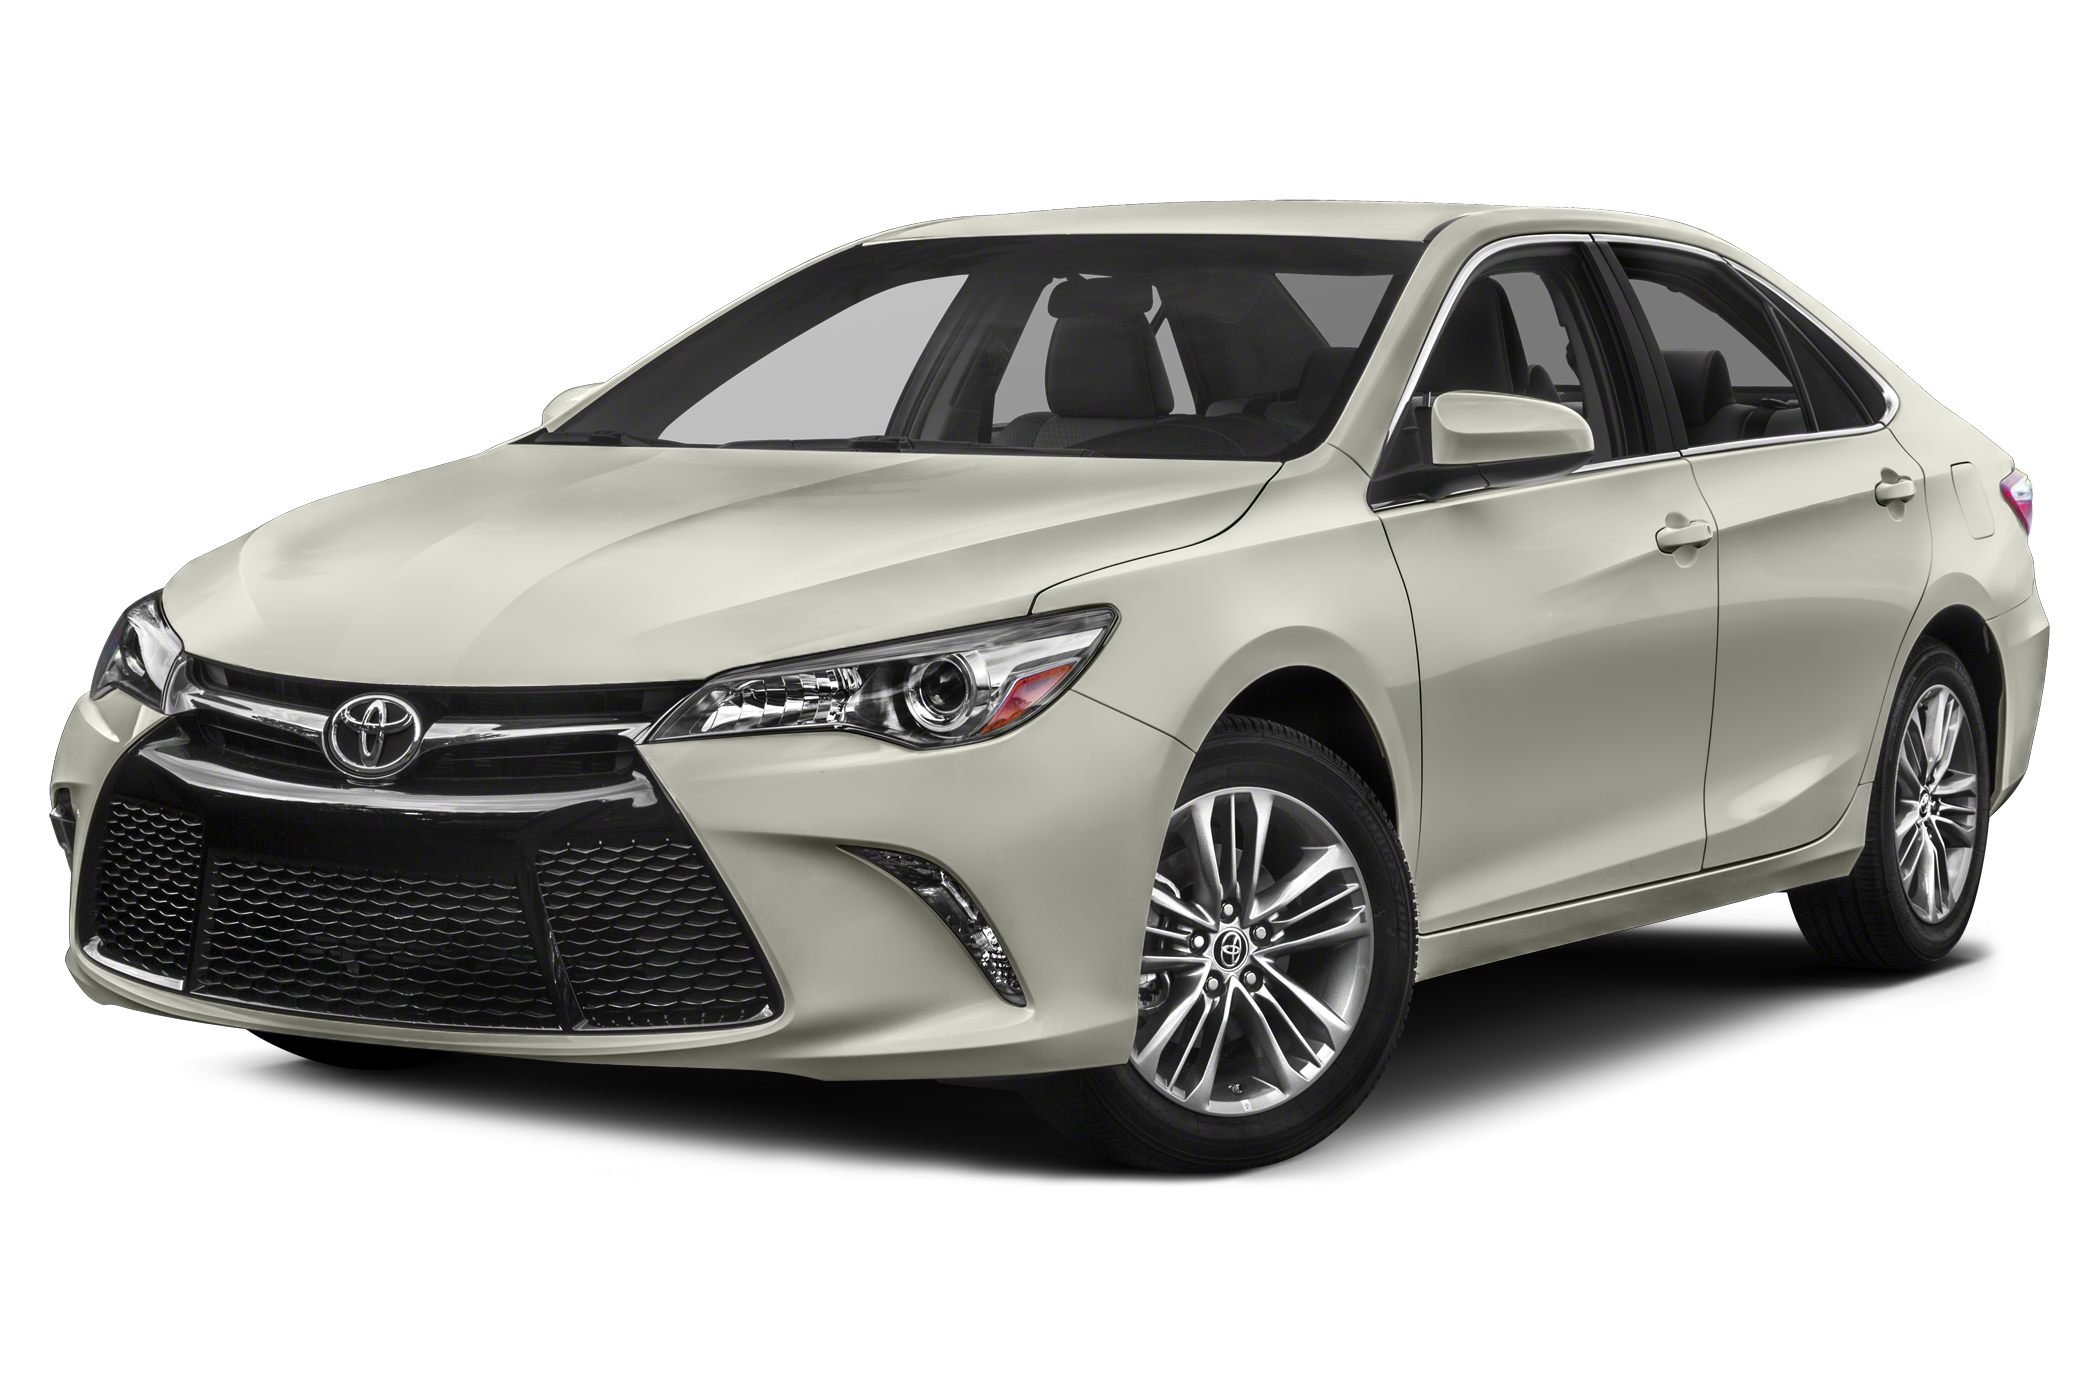 2015 Toyota Camry SE Sedan for sale in Dalton for $25,897 with 4 miles